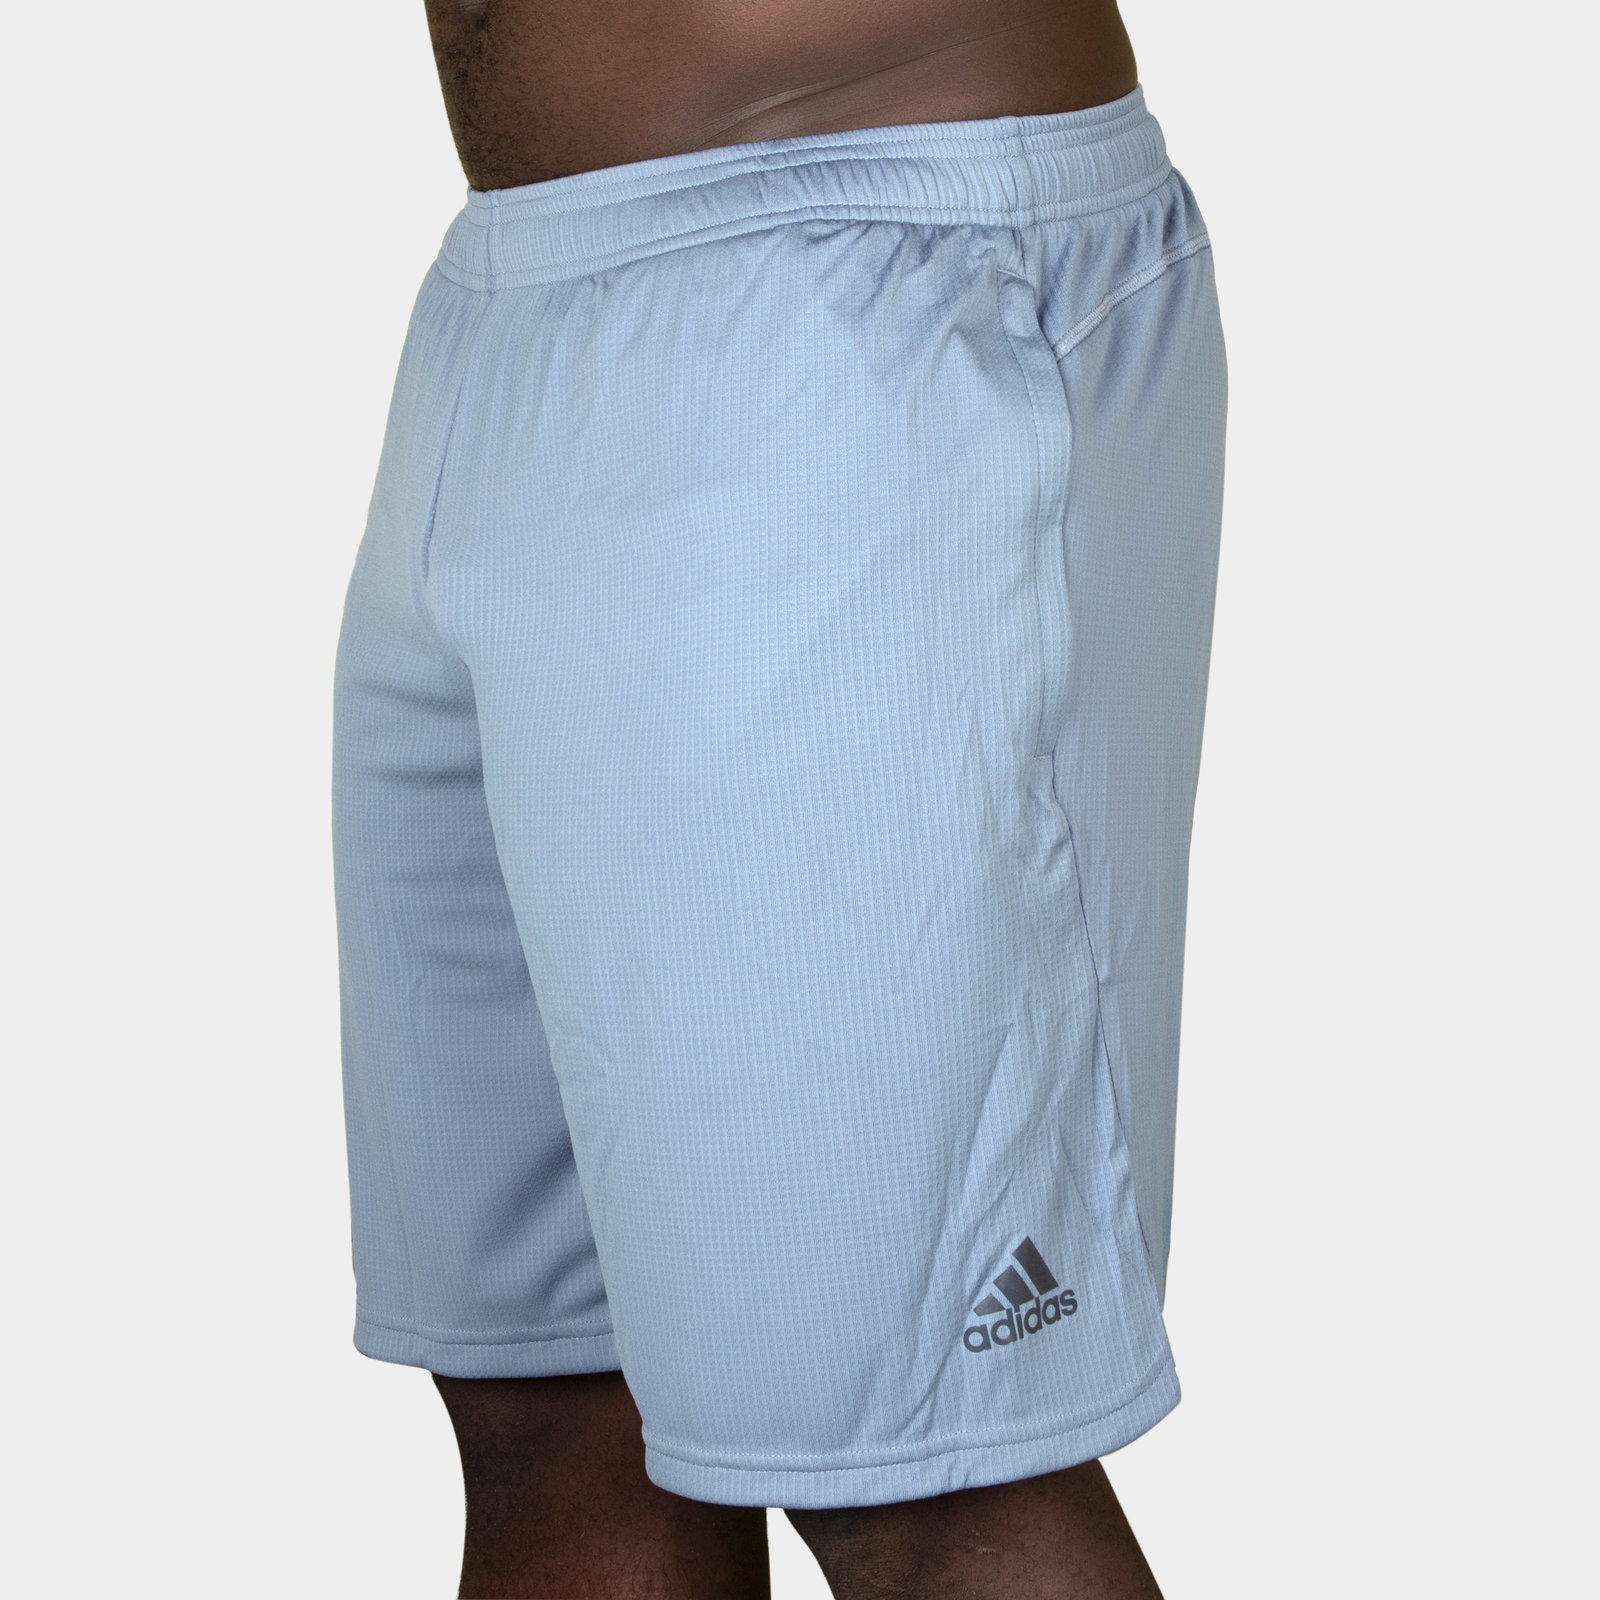 Image of 4KRFT Climachill Training Shorts